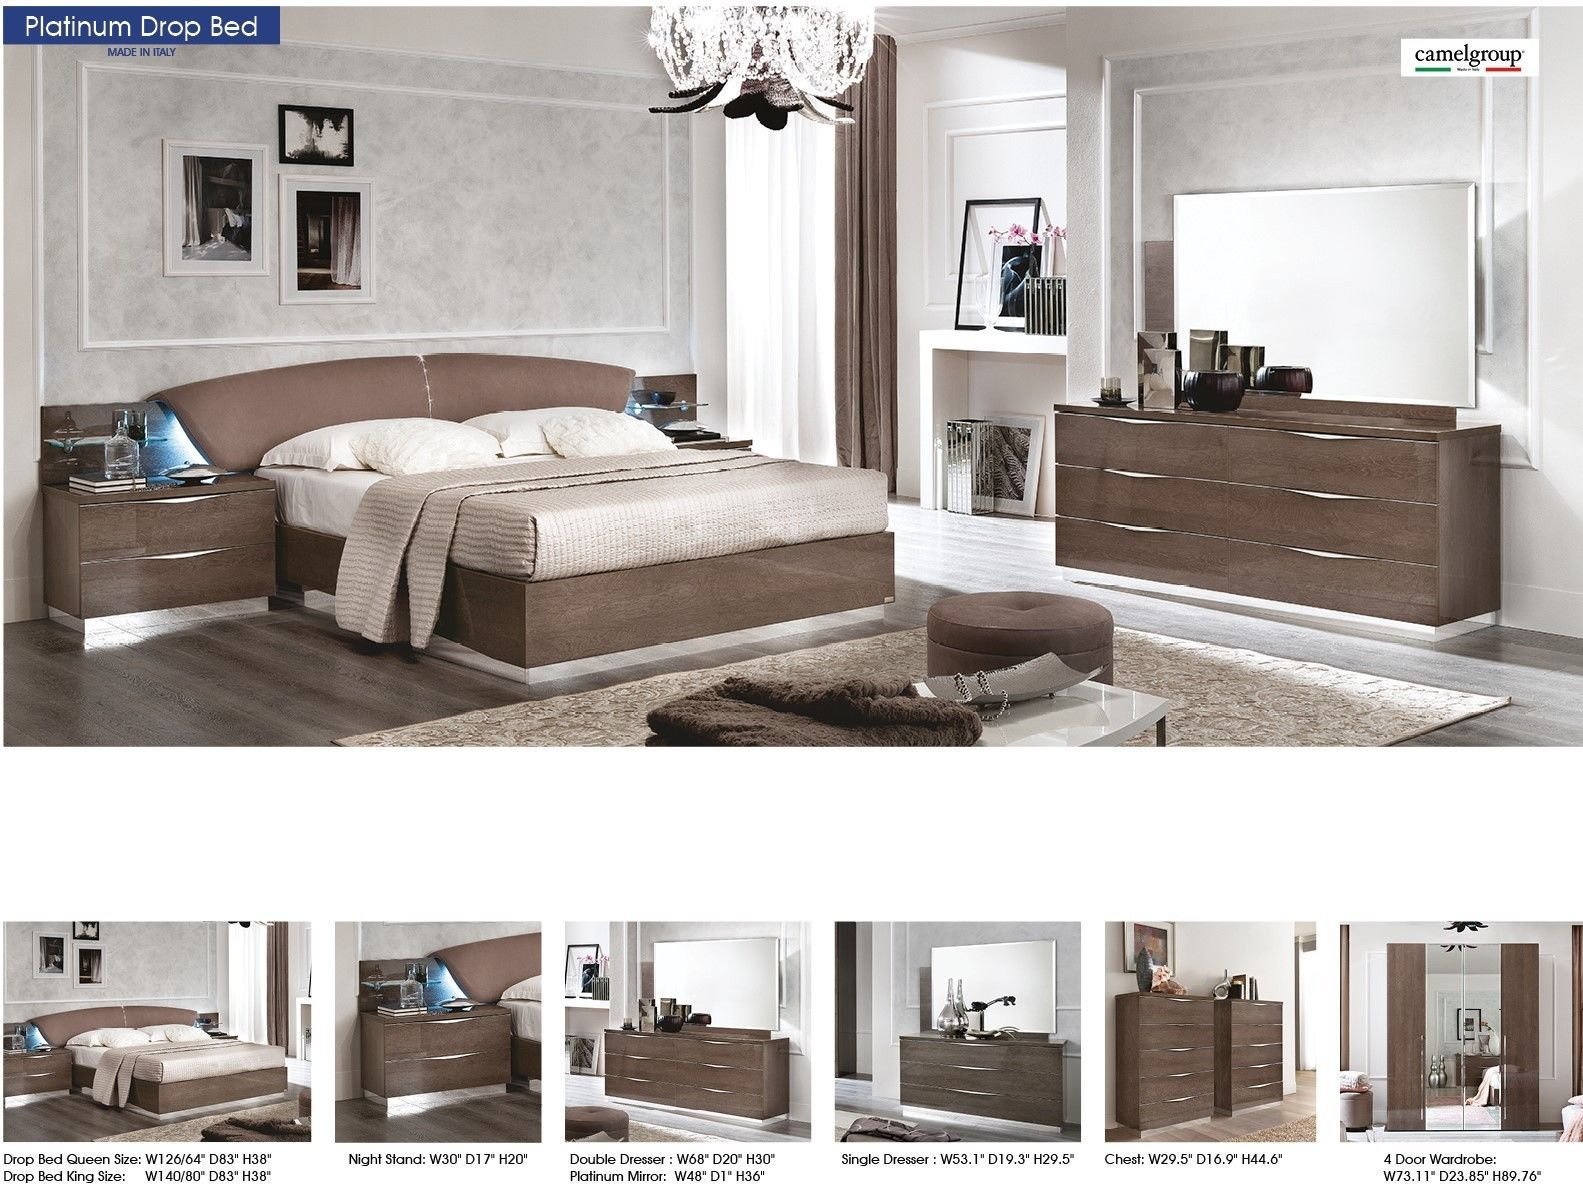 ESF Platinum Drop Queen Size Bedroom Set 5pc. Chic Contemporary Modern Style